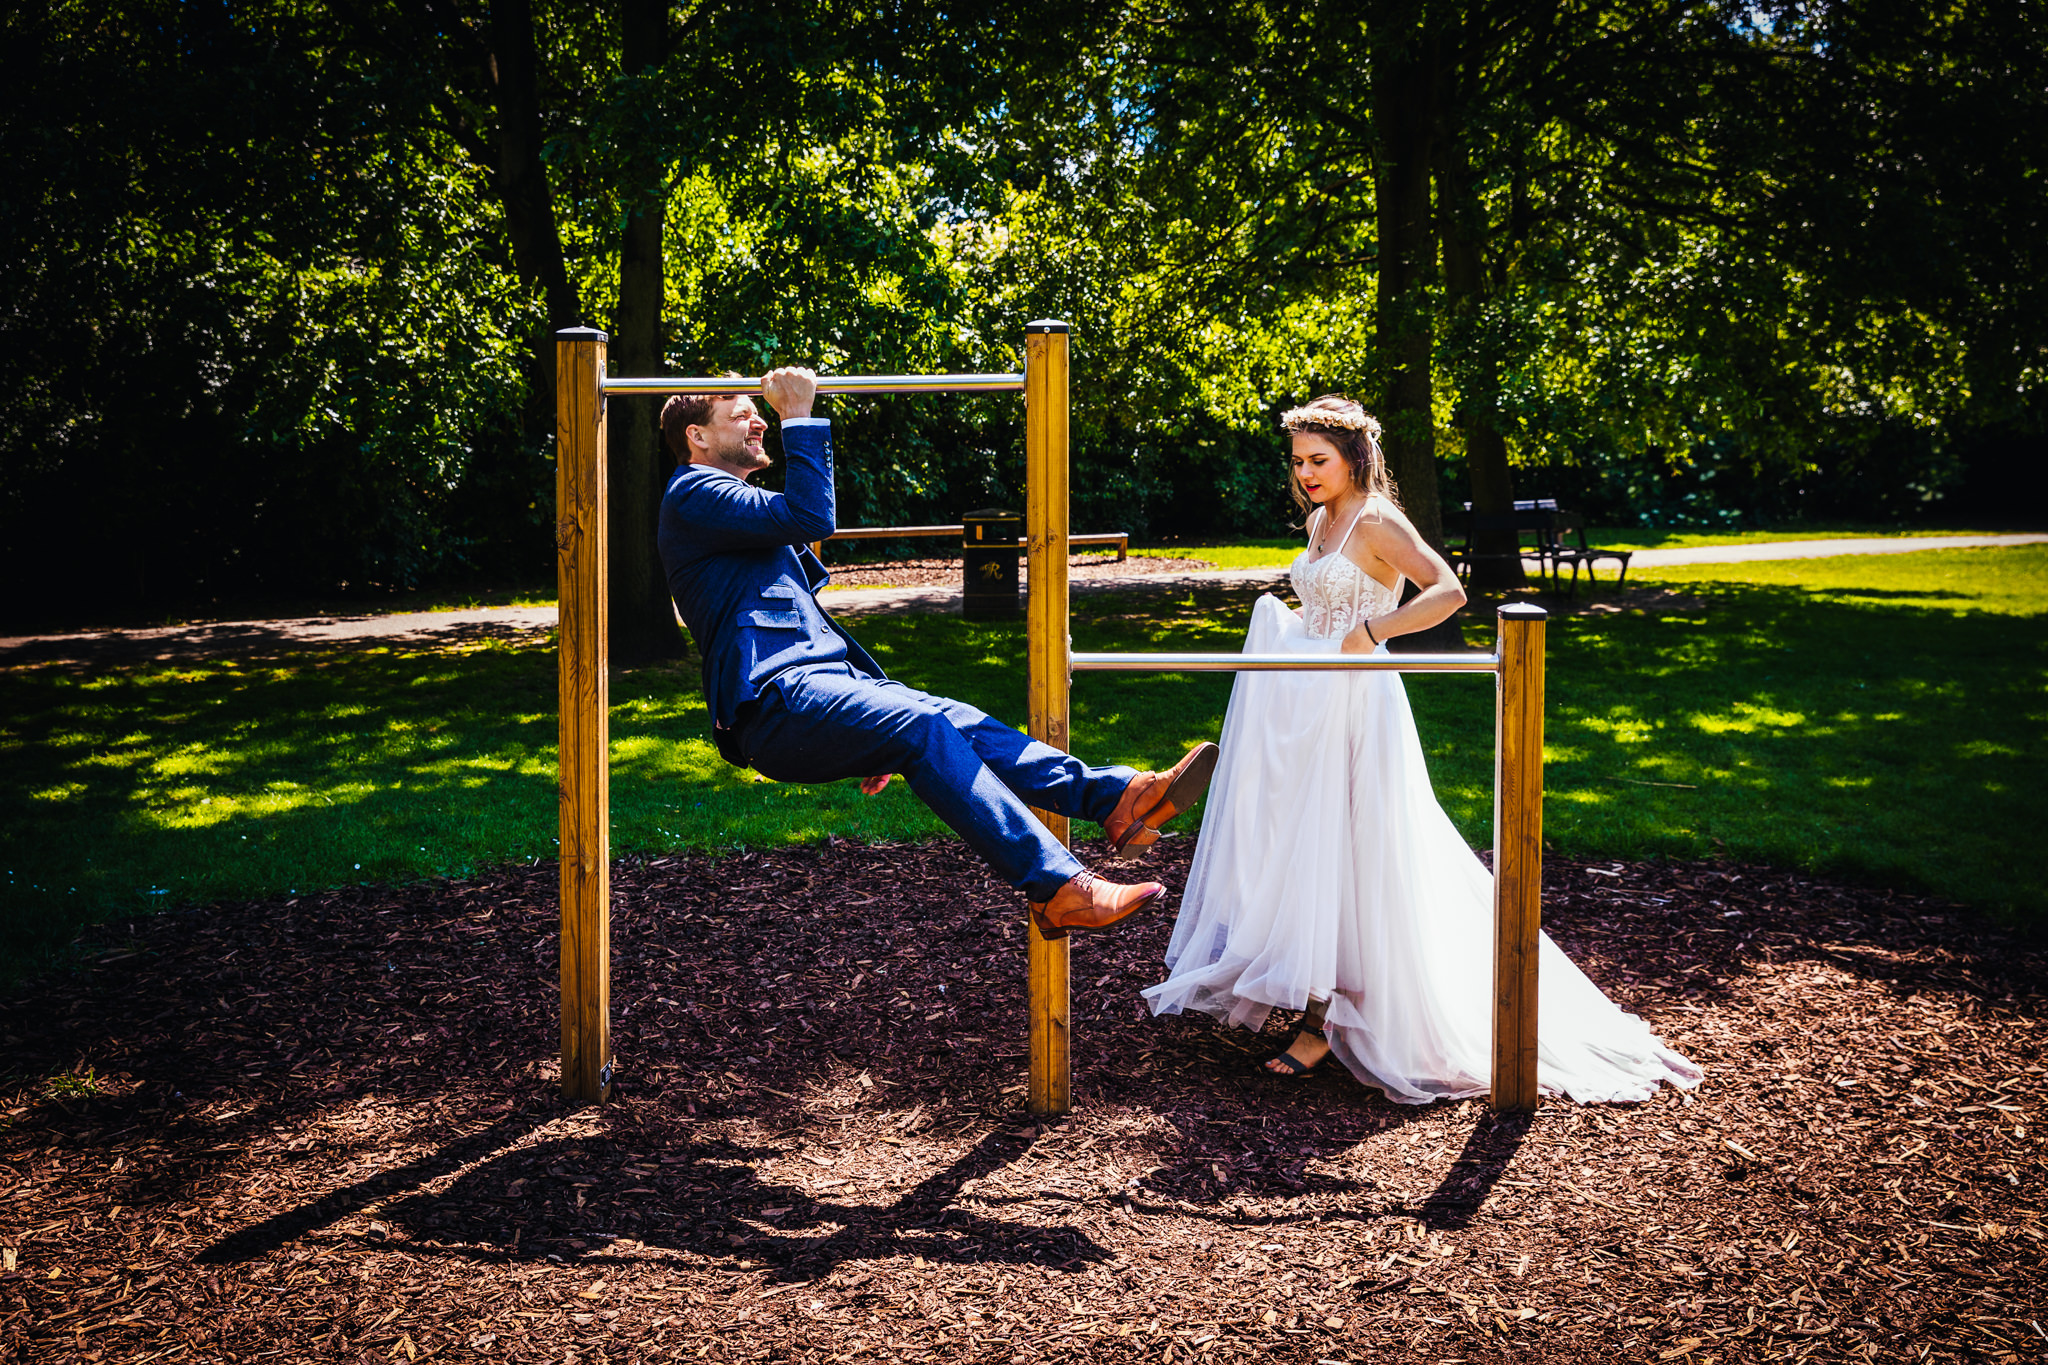 Wedding Photography Nottingham - Couple playing on the park during portraits